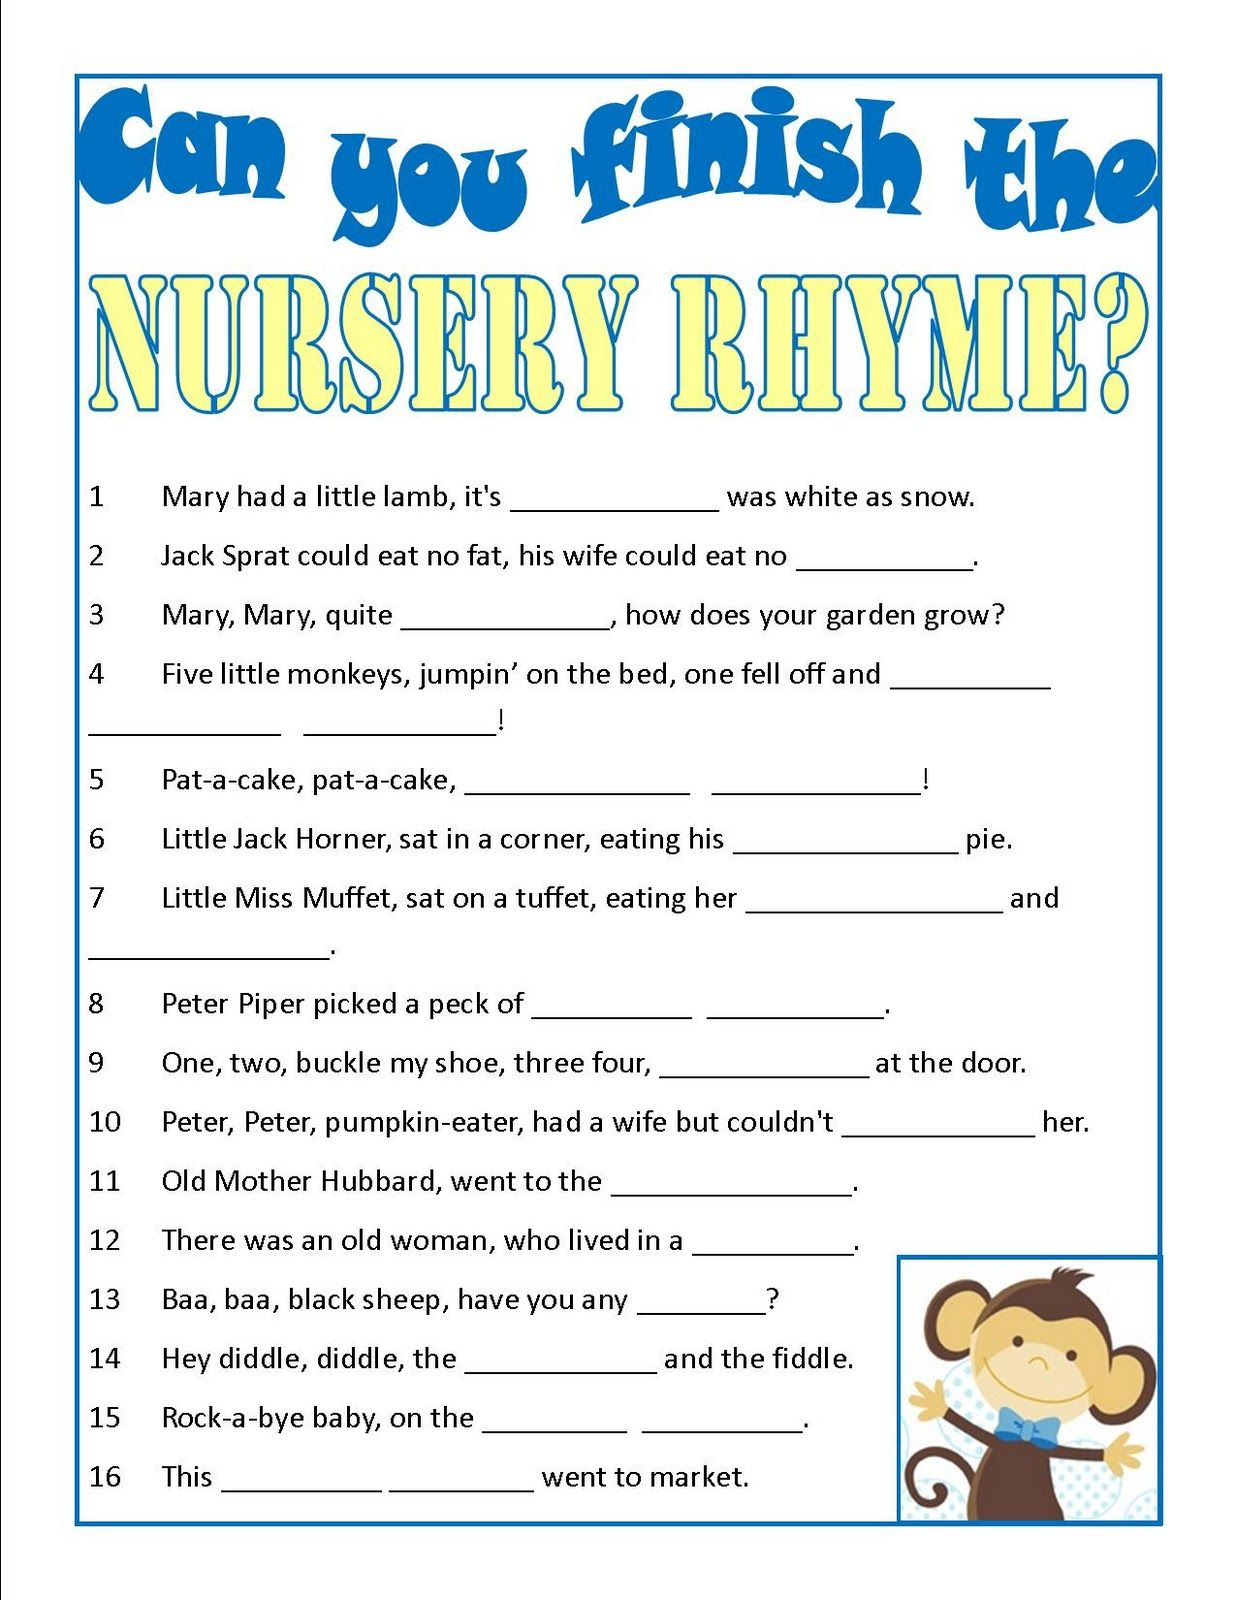 Baby Shower Game   Can You Finish The Nursery Rhyme?   Super Easy One ,